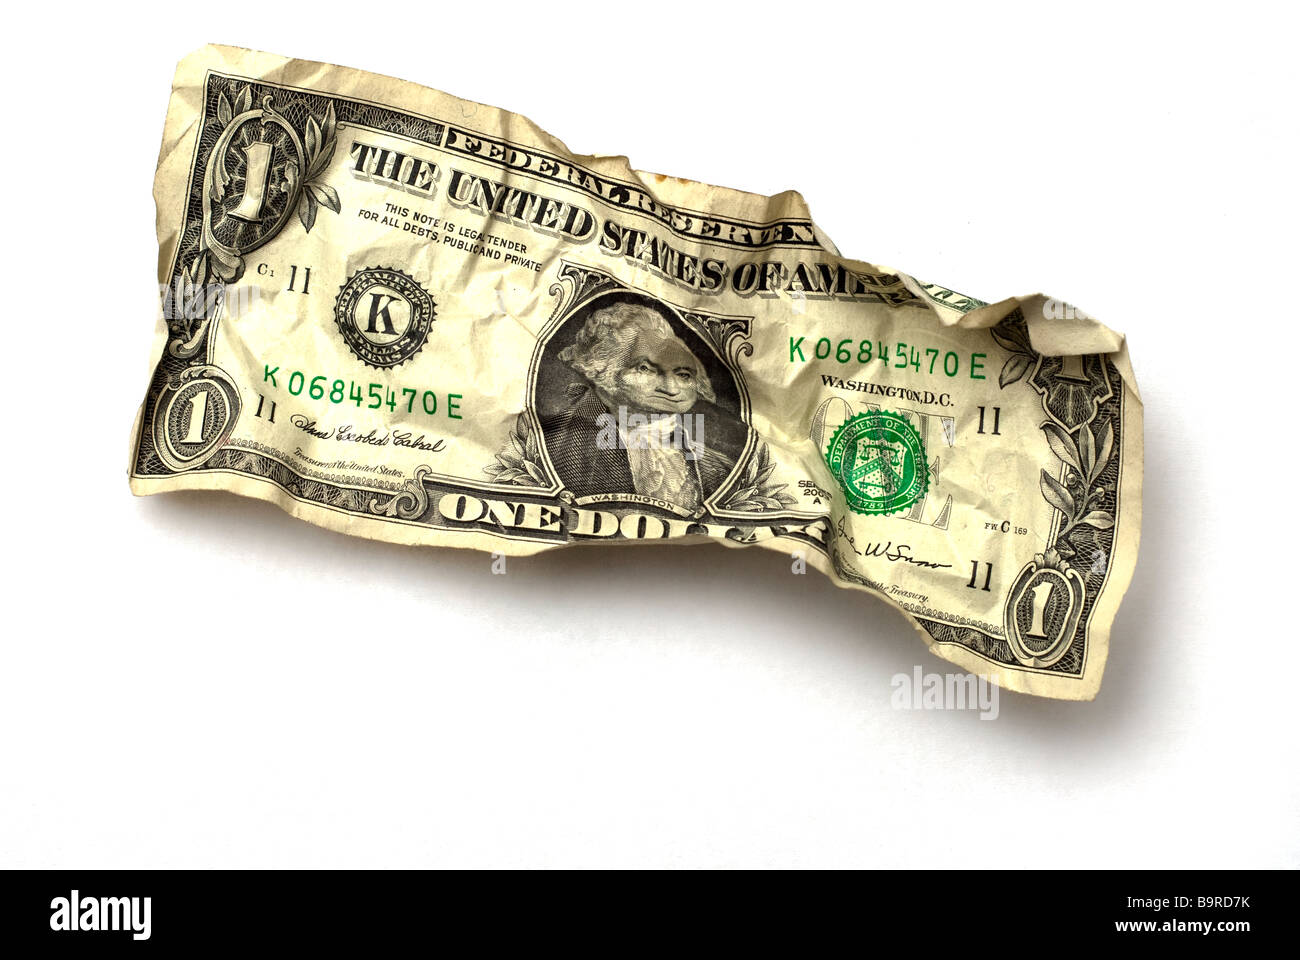 crumpled dollar bill on white background - Stock Image